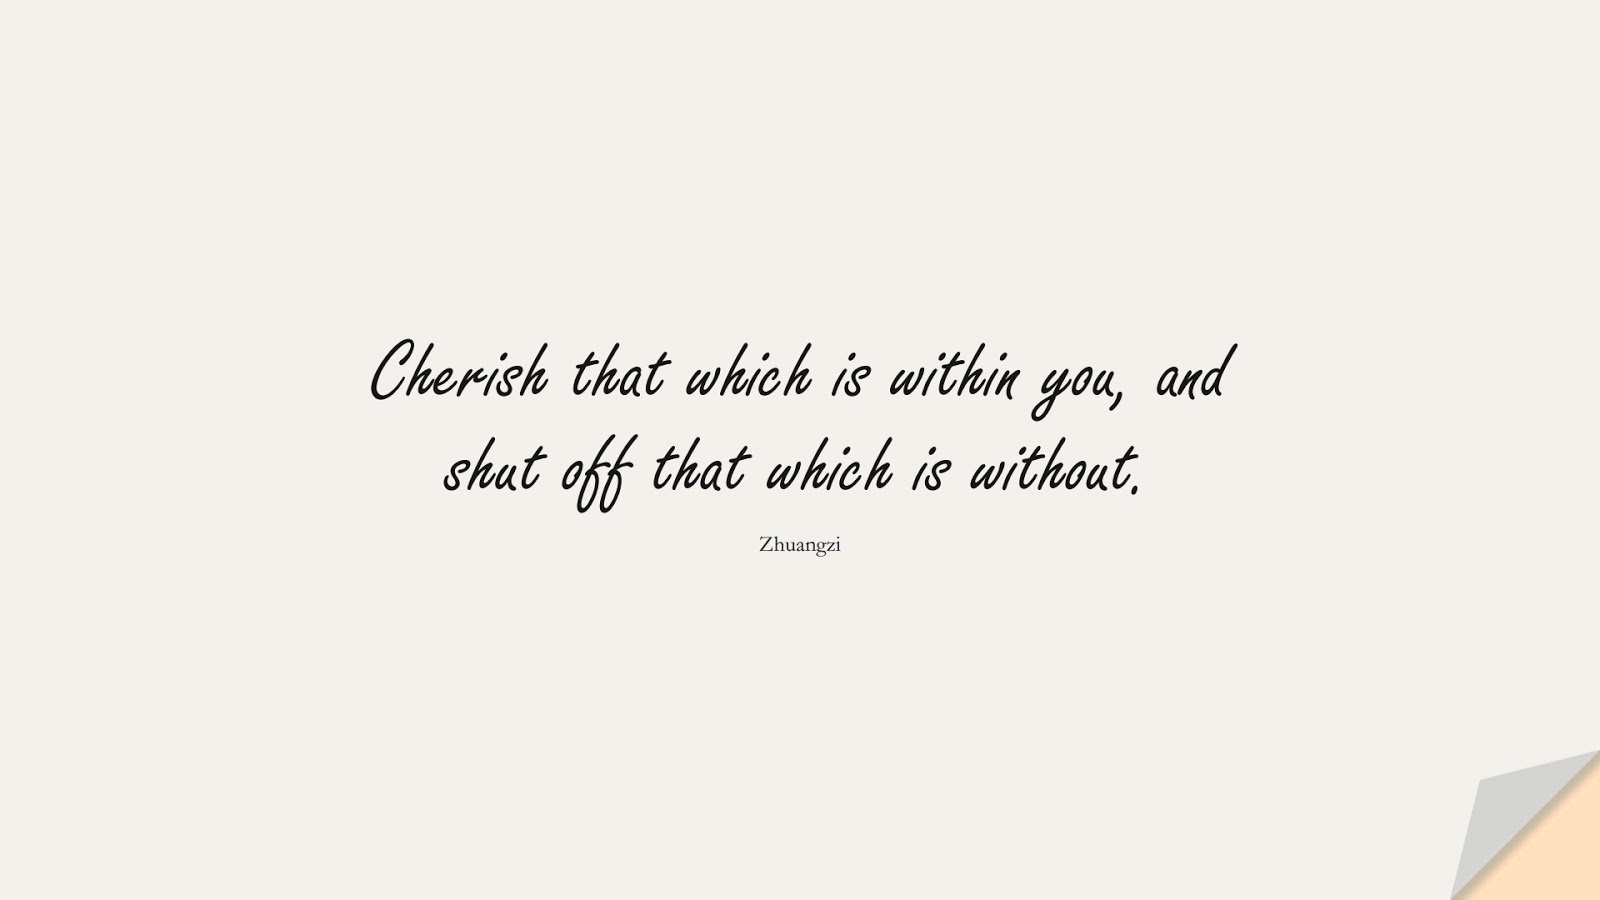 Cherish that which is within you, and shut off that which is without. (Zhuangzi);  #BeYourselfQuotes